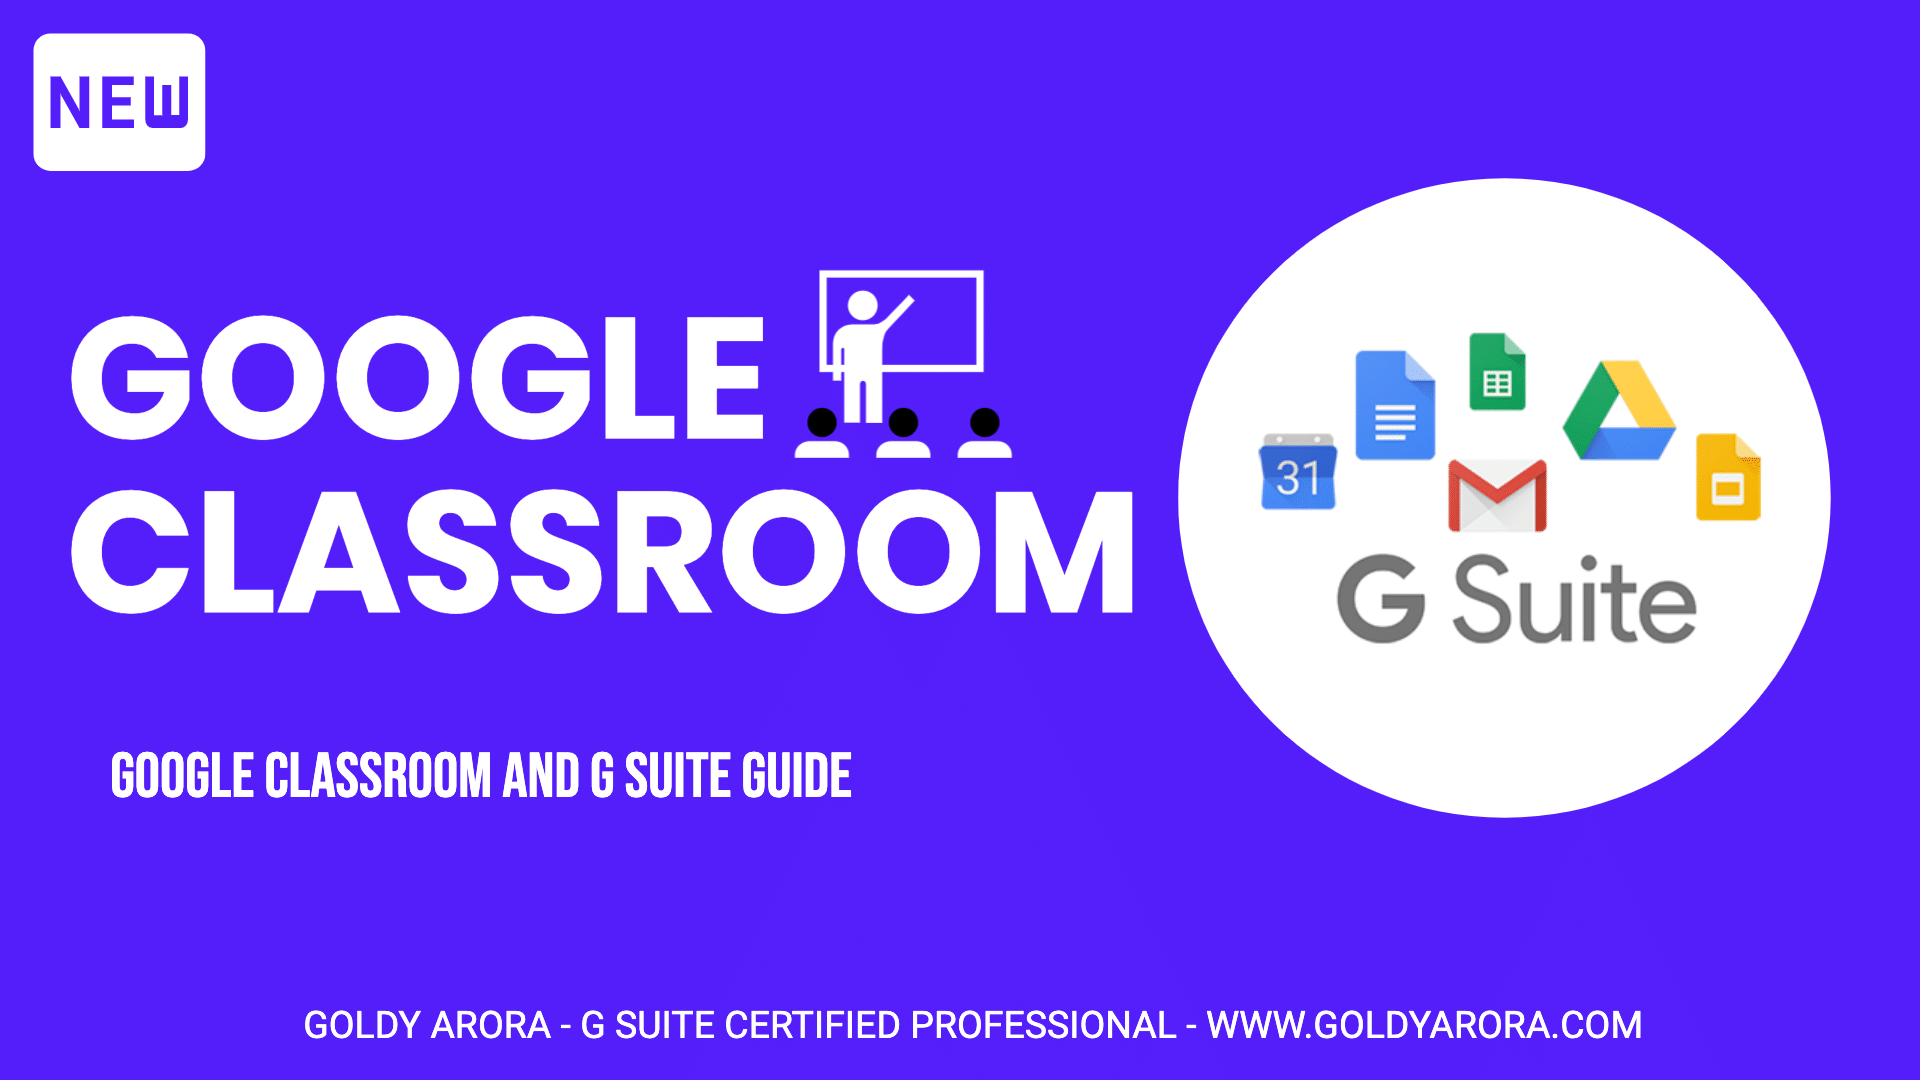 Google Classroom And G Suite Guide